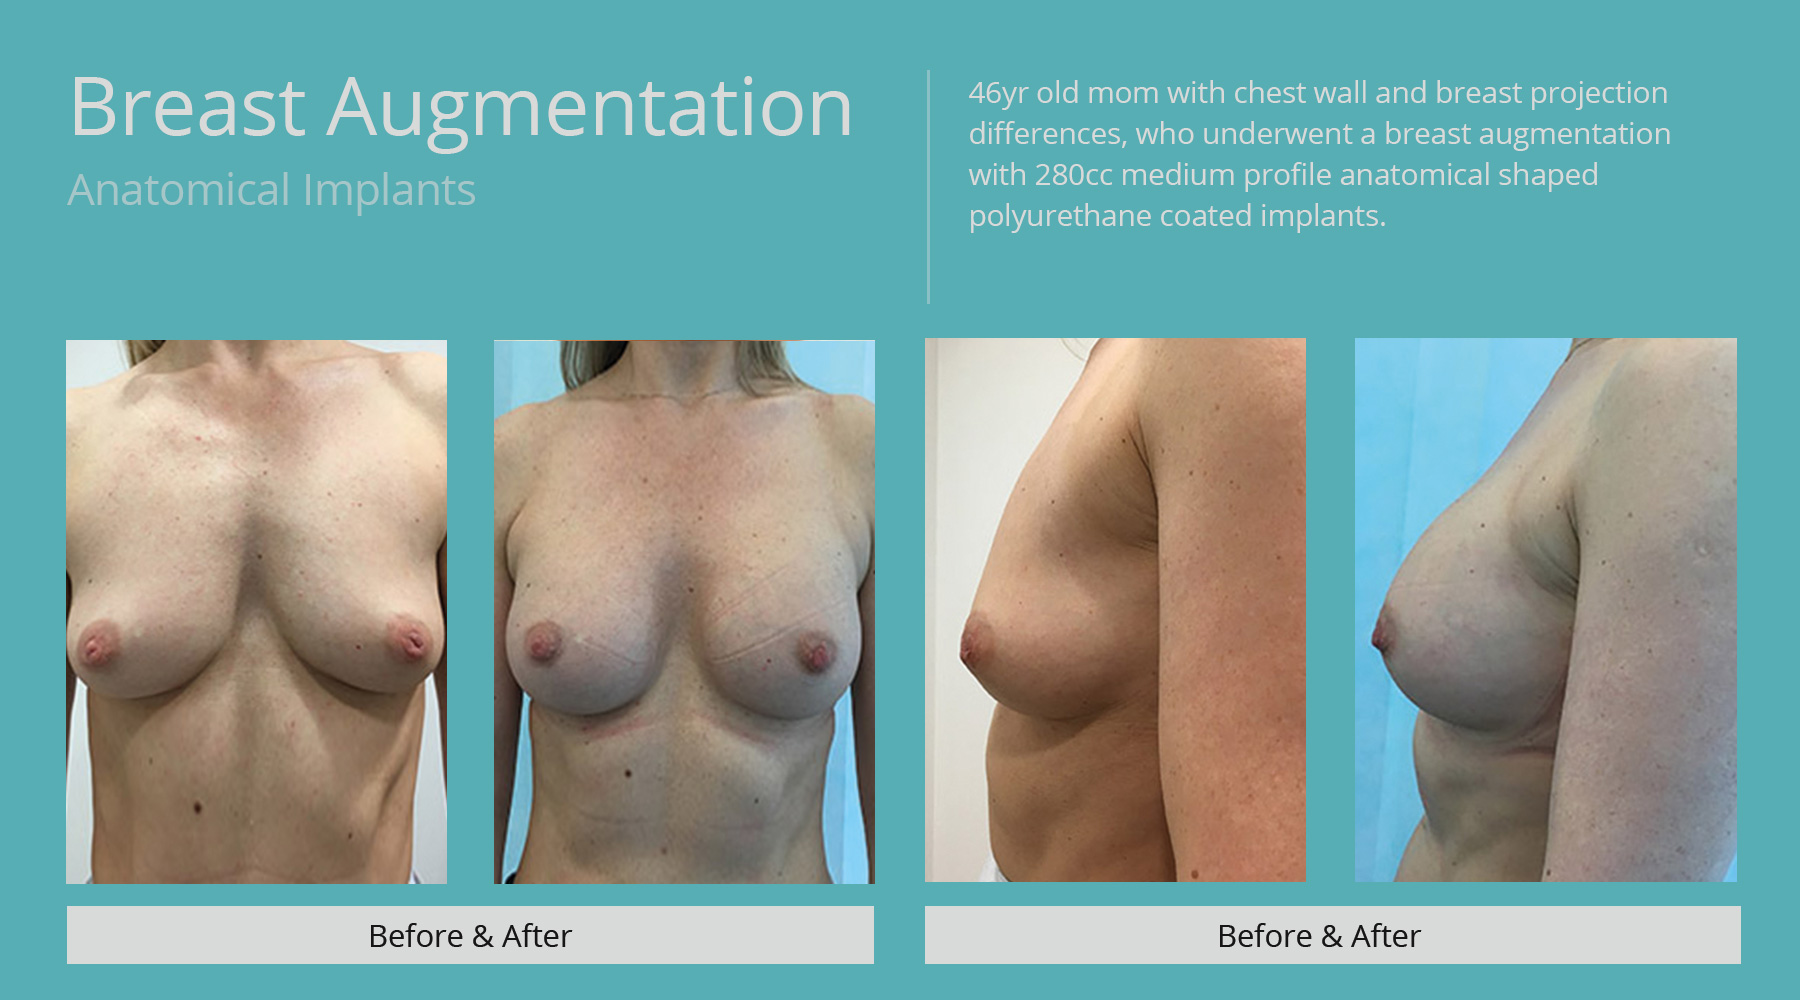 Breast-Augmentation-anatomical-15